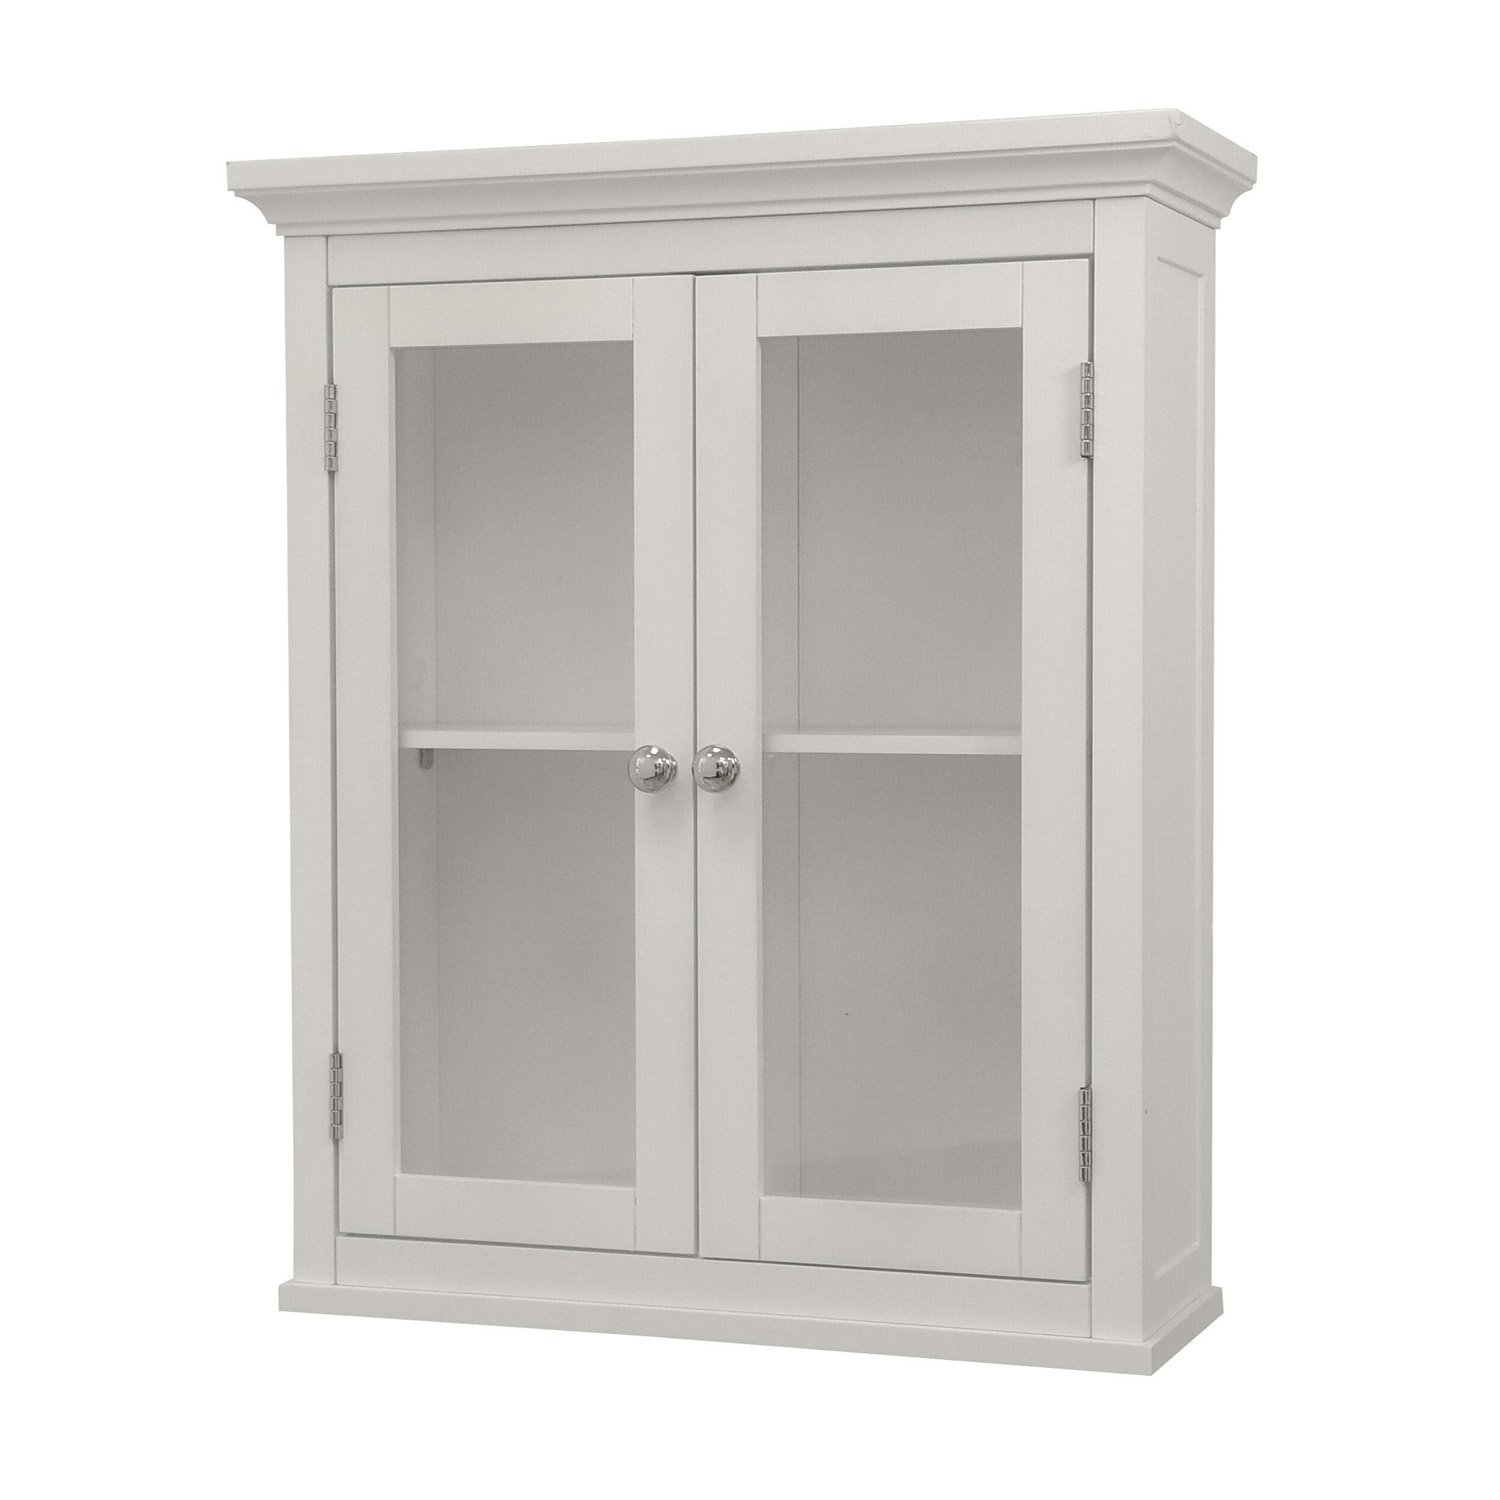 Amazon com elegant home fashions madison collection shelved wall cabinet with glass paneled doors white kitchen dining